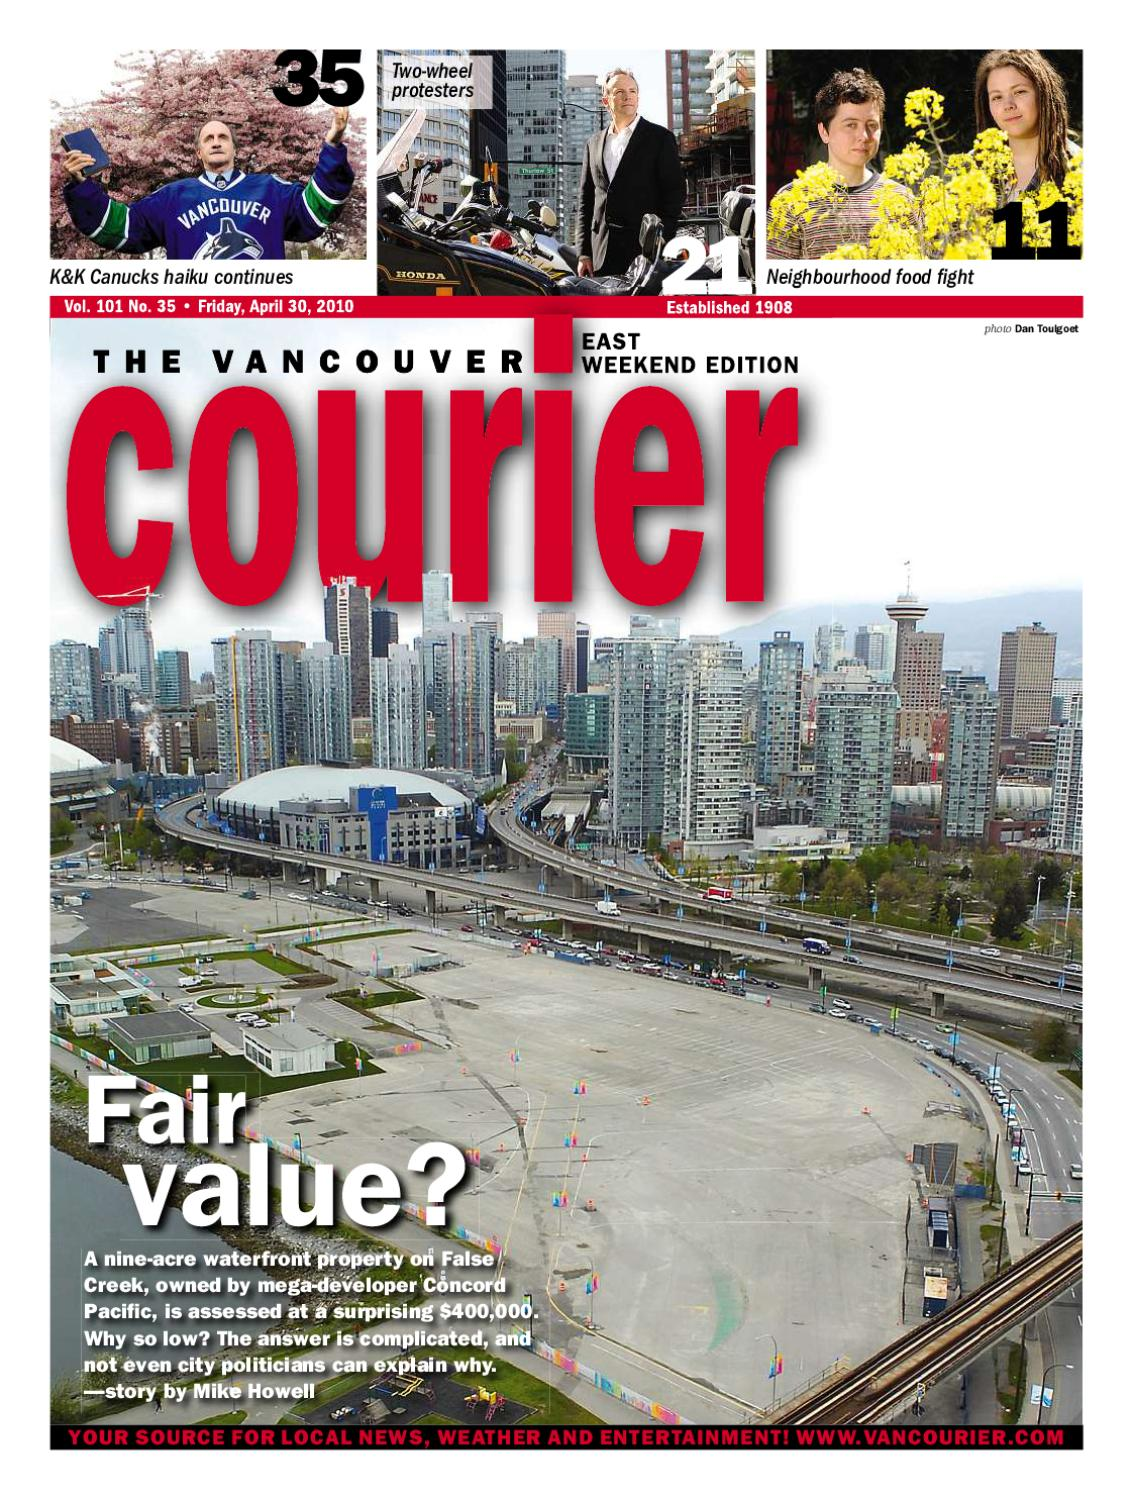 f15f193ab3d6 Vancouver Courier - April 30th 2010 by Postmedia Community Publishing -  issuu